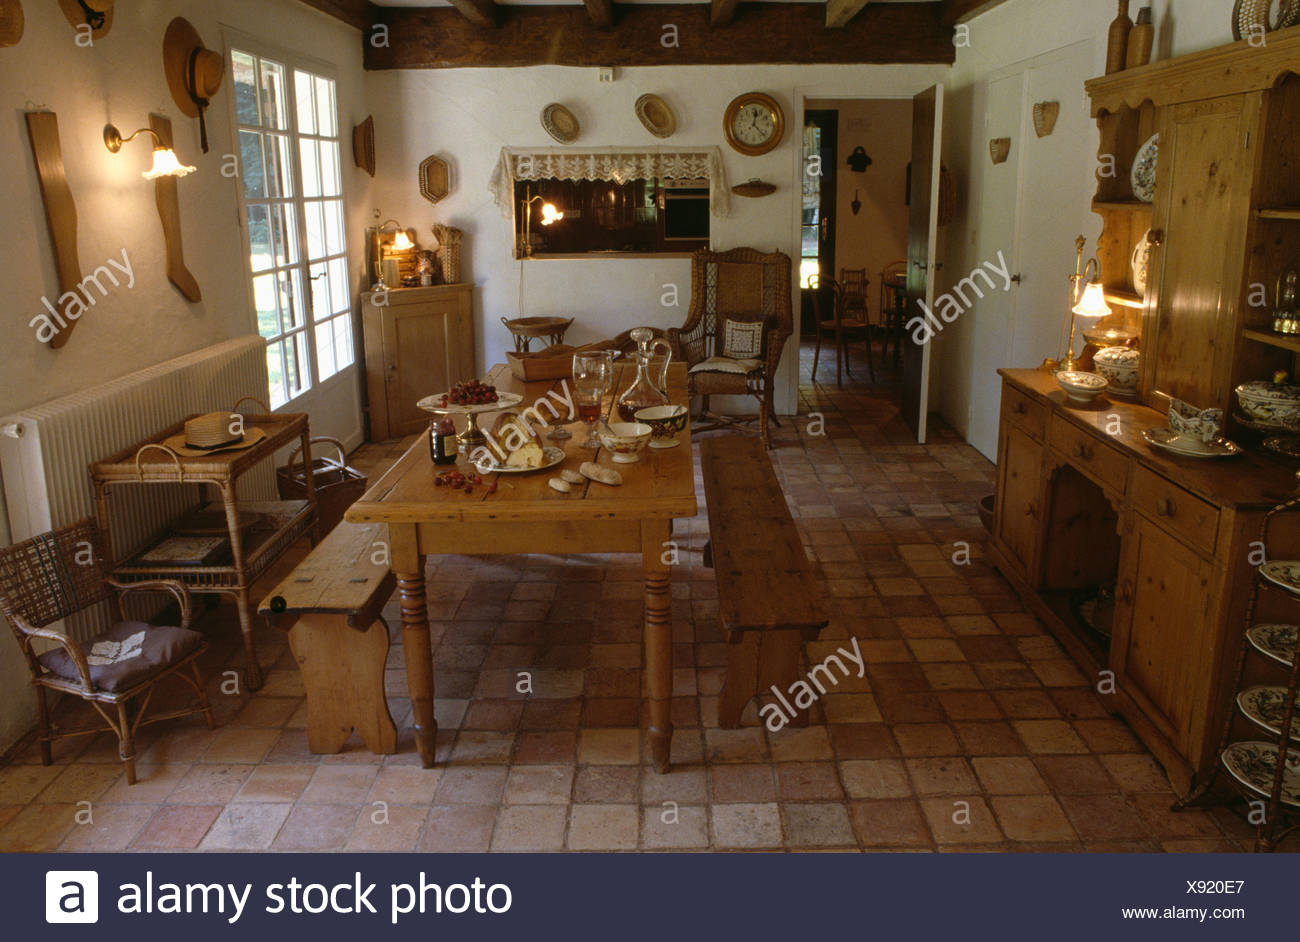 Wooden Benches And Old Pine Table On Terracotta Tiled Floor In Traditional French  Country Dining Room With Glass Wall Lights